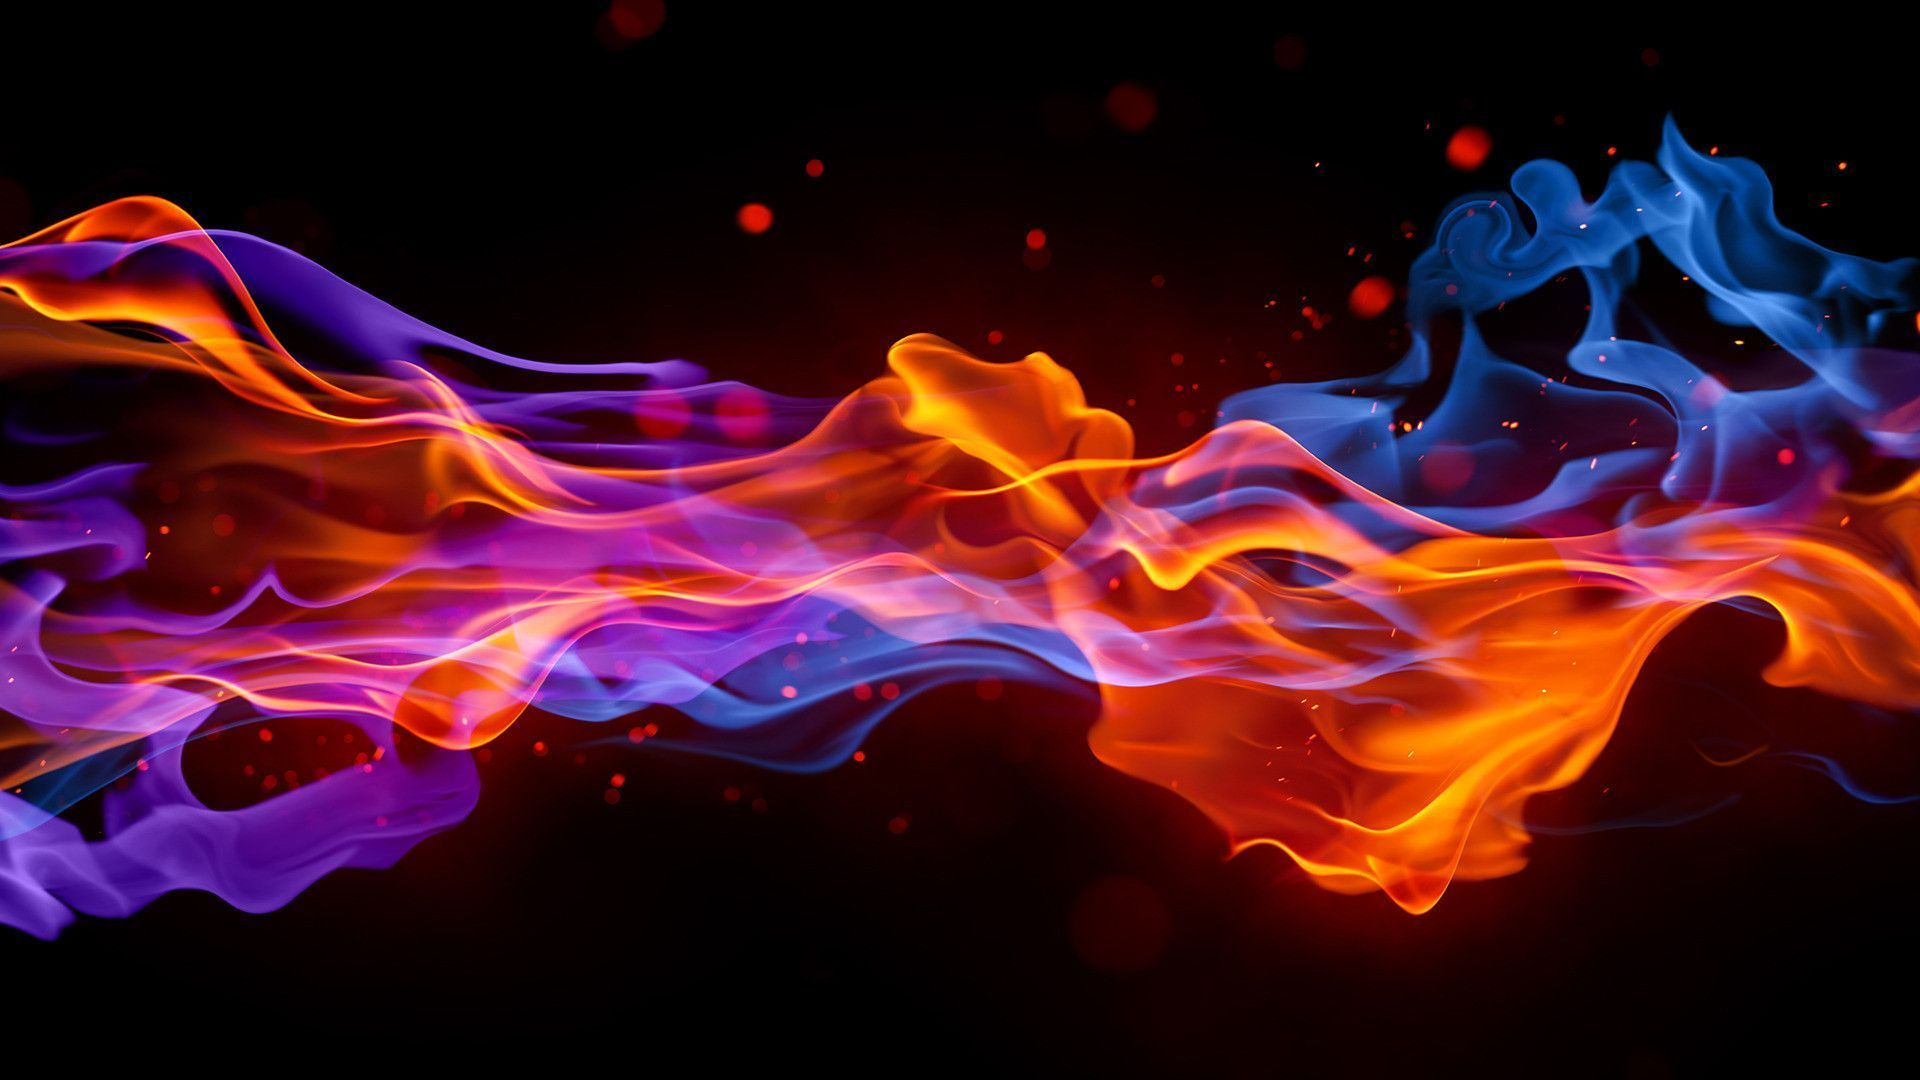 Fire and ice fractal abstract wallpaper hd wallpapers - Fire Wallpapers Hd Wallpaper